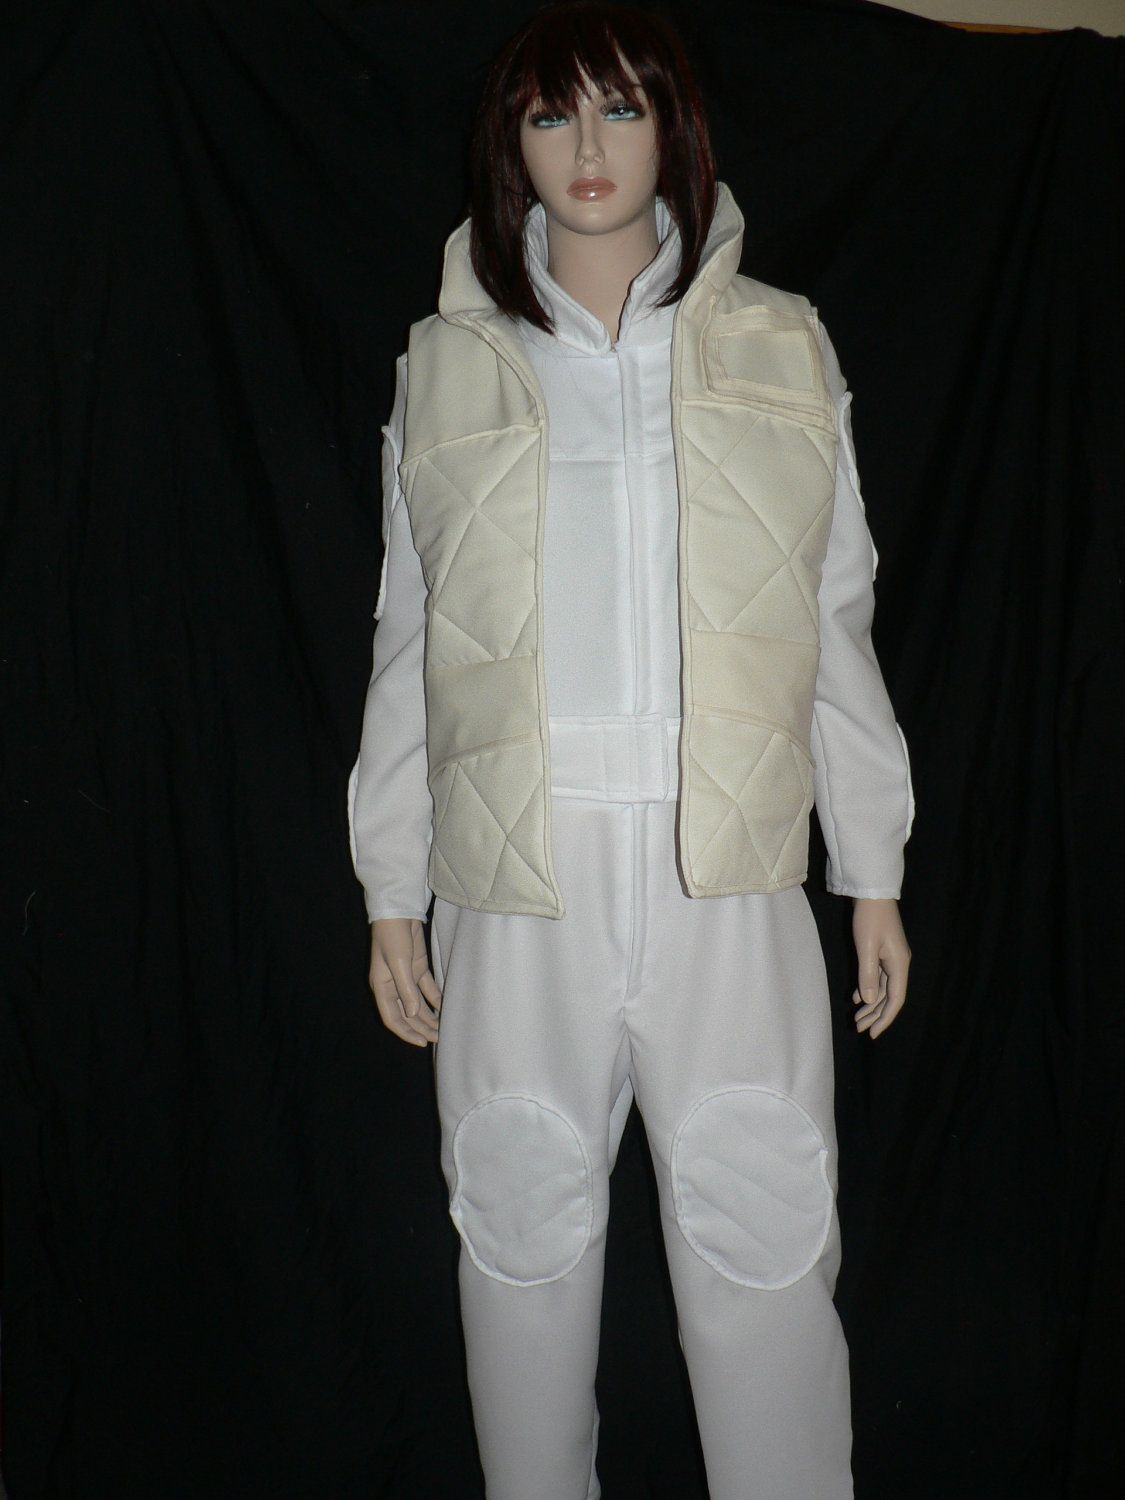 0f3b0eb26d15 Star Wars Princess Leia s Hoth Costume - White Jumpsuit With Vest ...